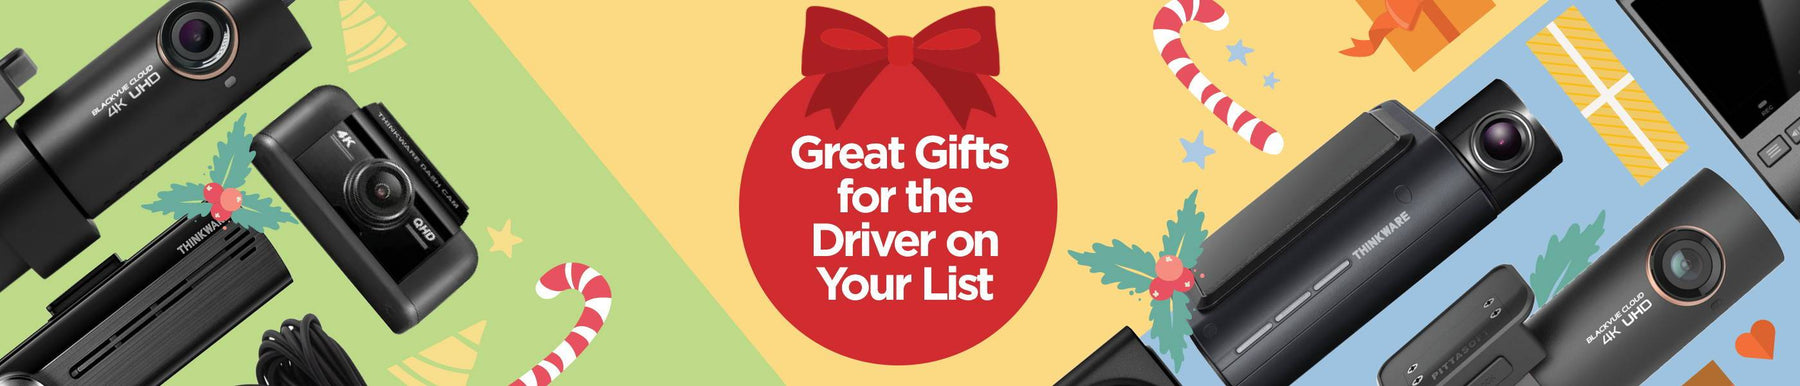 Great Holiday Gifts for the Driver on Your List